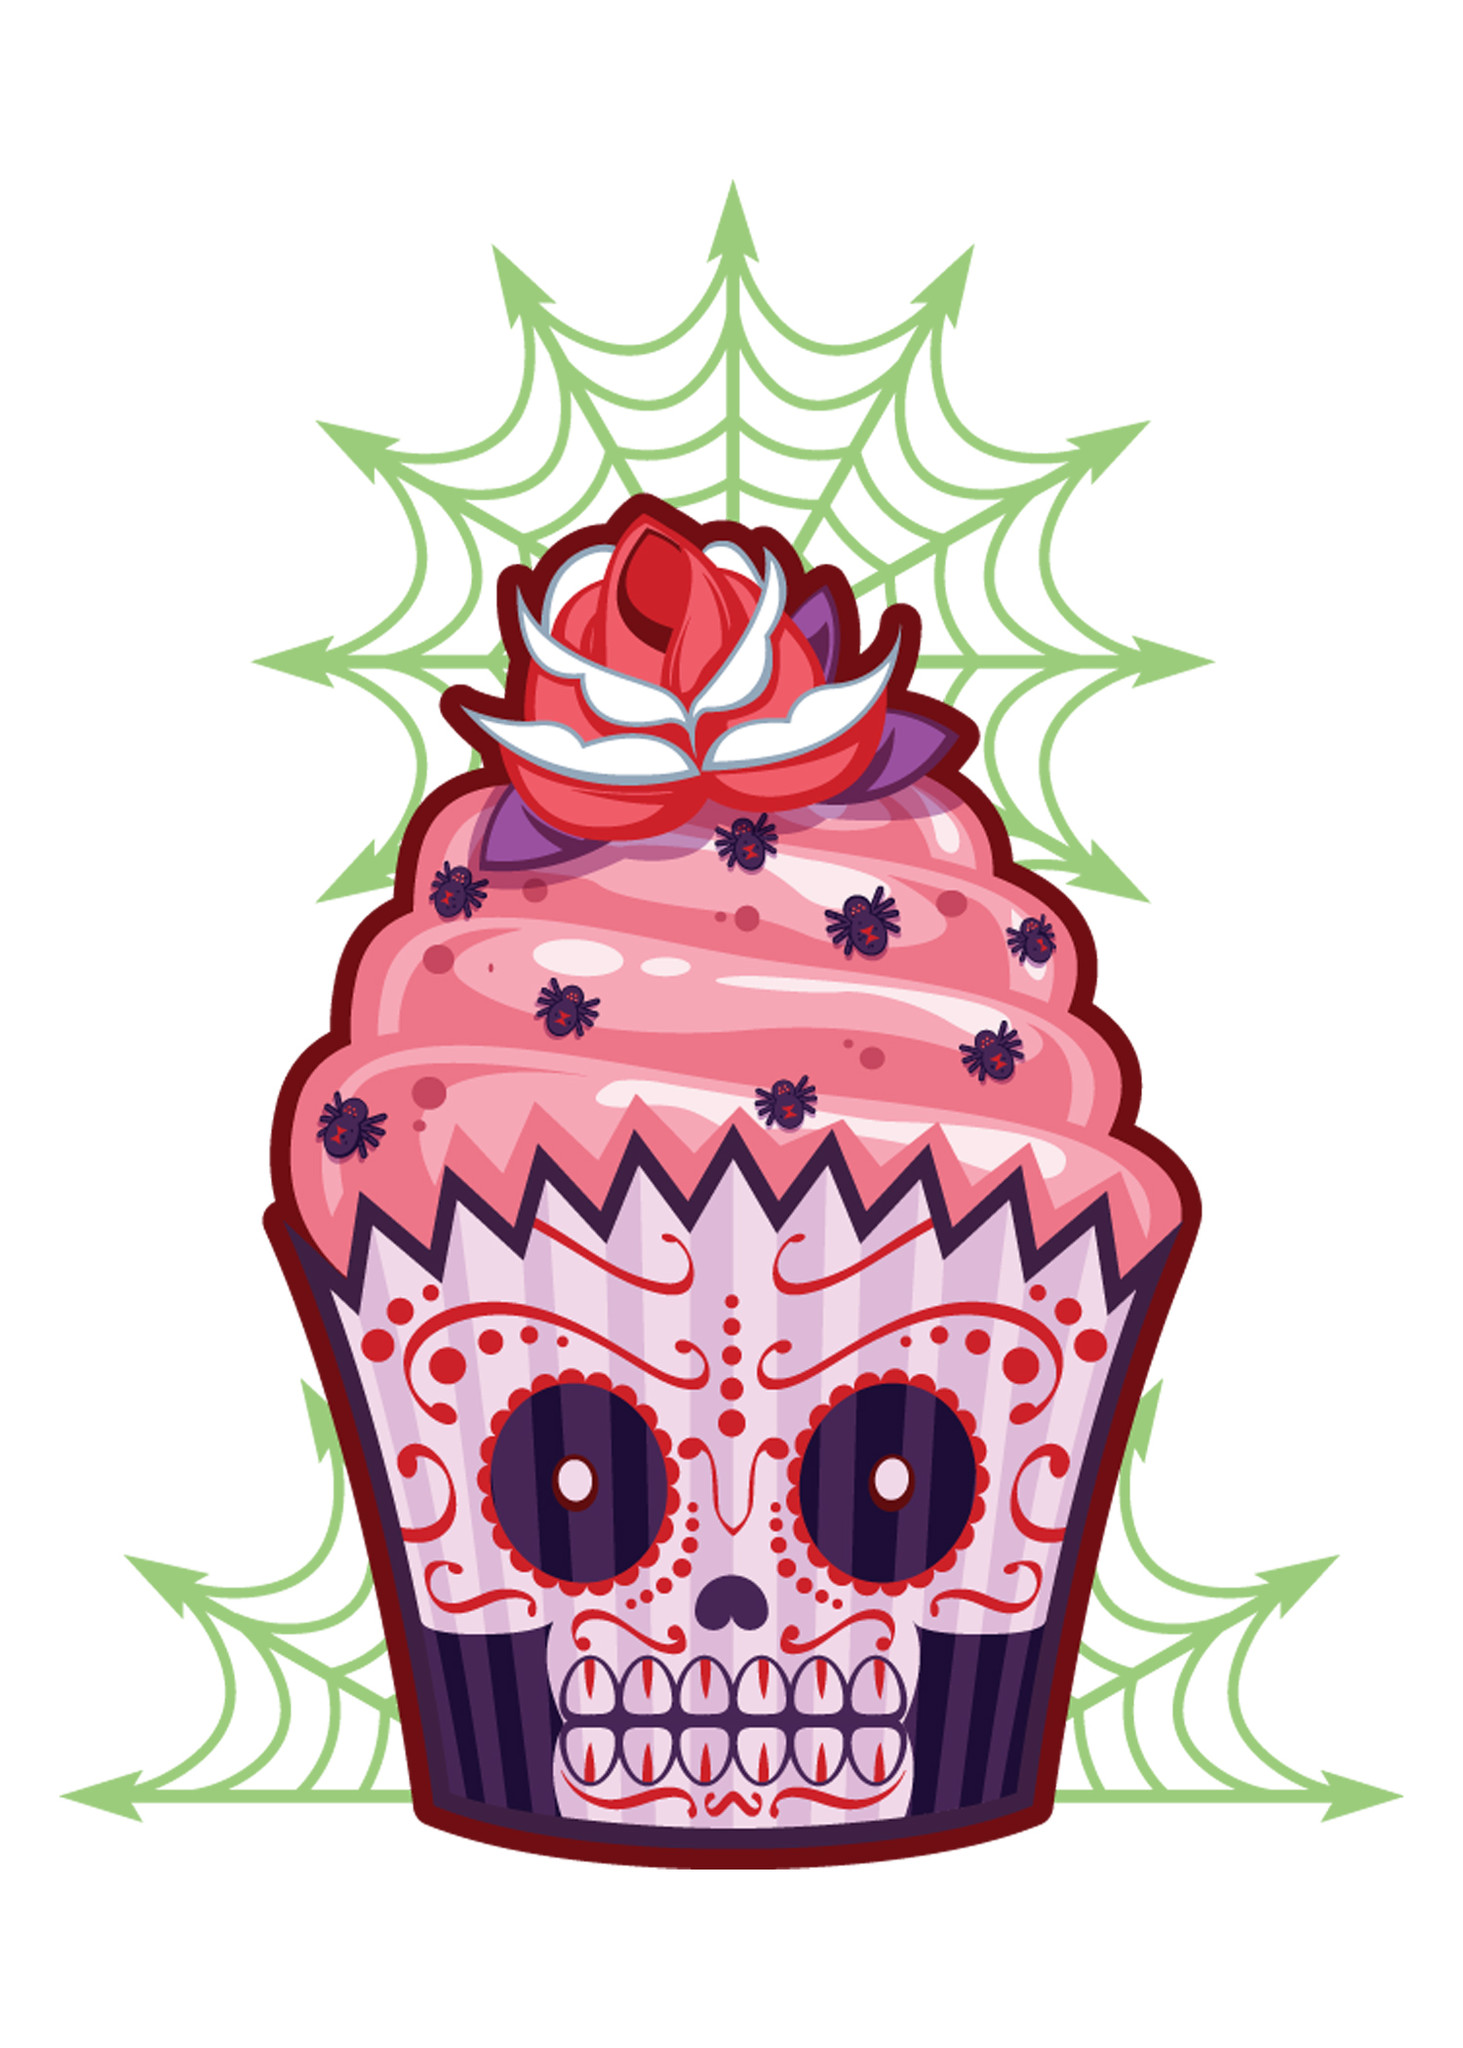 54 sugar skull cupcake tattoos ideas with meaning spider web and sugar skull cupcake tattoo design biocorpaavc Images